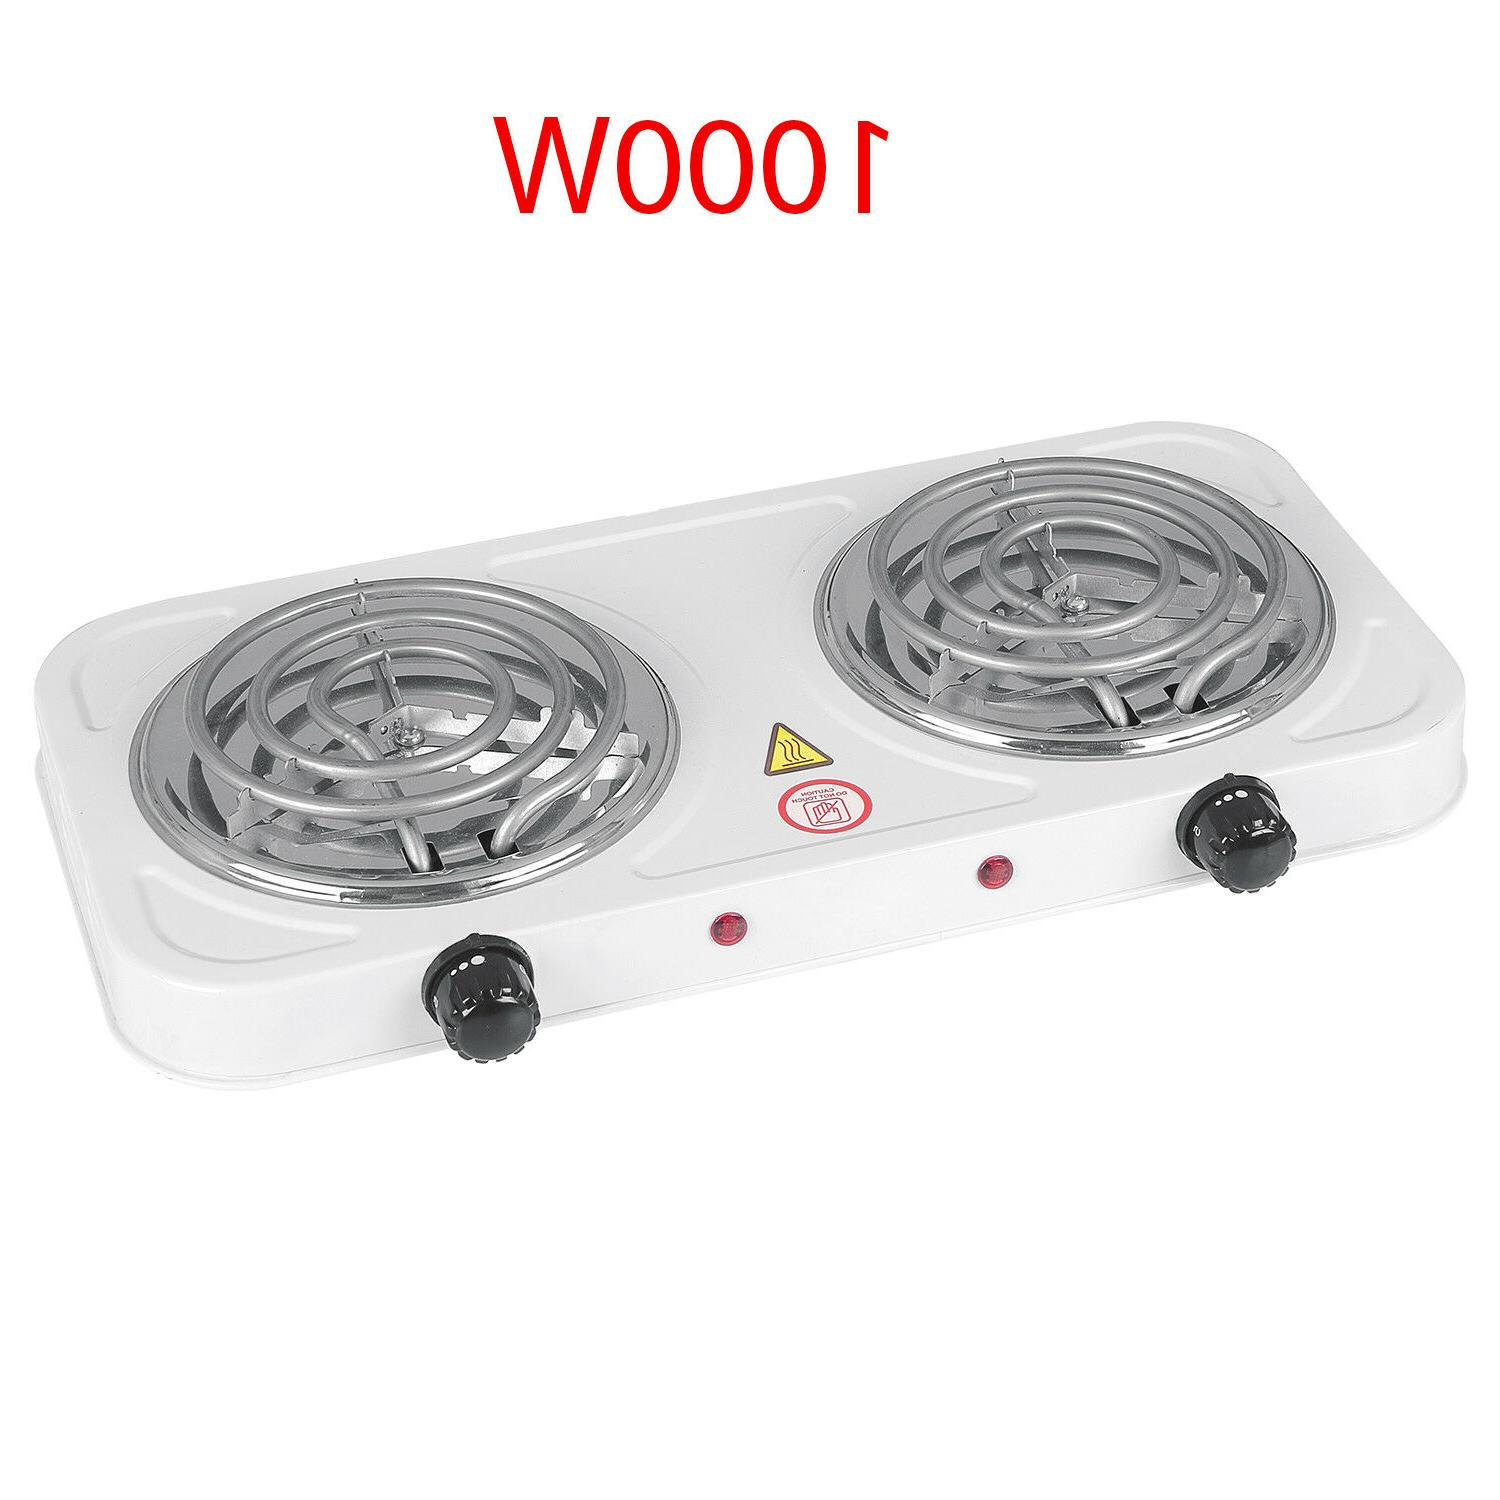 electric double burner hotplates heating plates portable